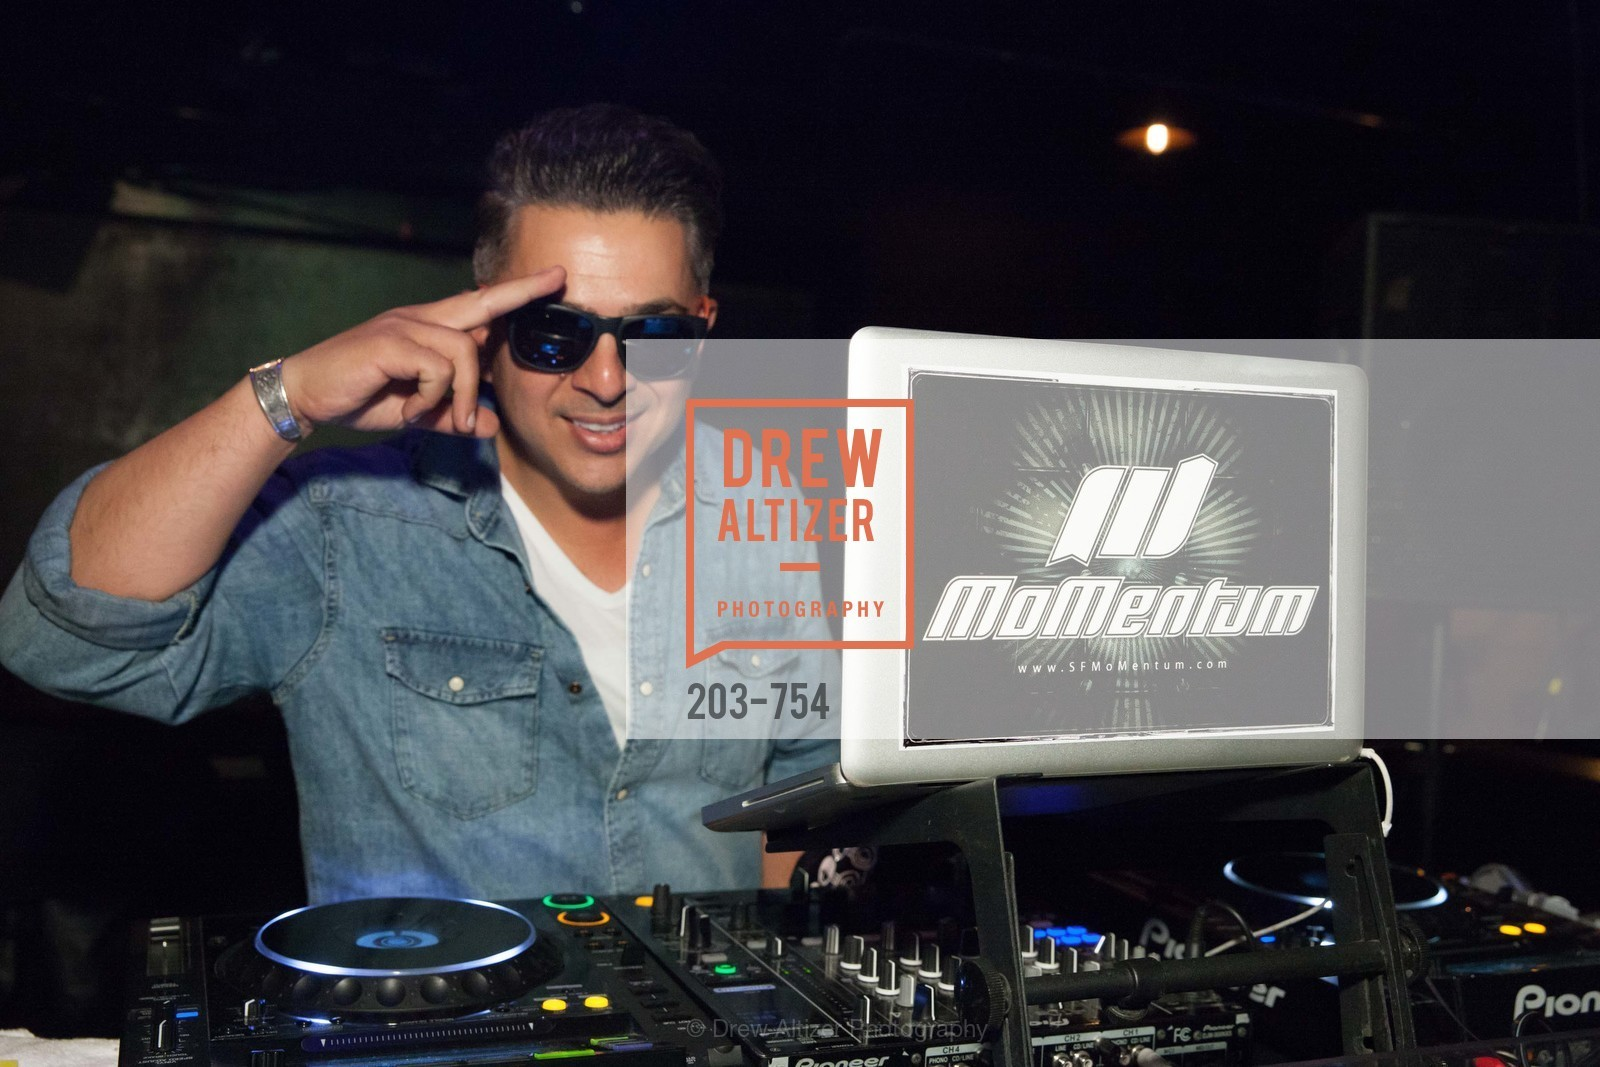 DJ Momentum, SPINSTERS OF SAN FRANCISCO Party Like It's 1985 Charity Party, US, Fort One Bar & Lounge. 2801 Leavenworth St, May 30th, 2015,Drew Altizer, Drew Altizer Photography, full-service agency, private events, San Francisco photographer, photographer california